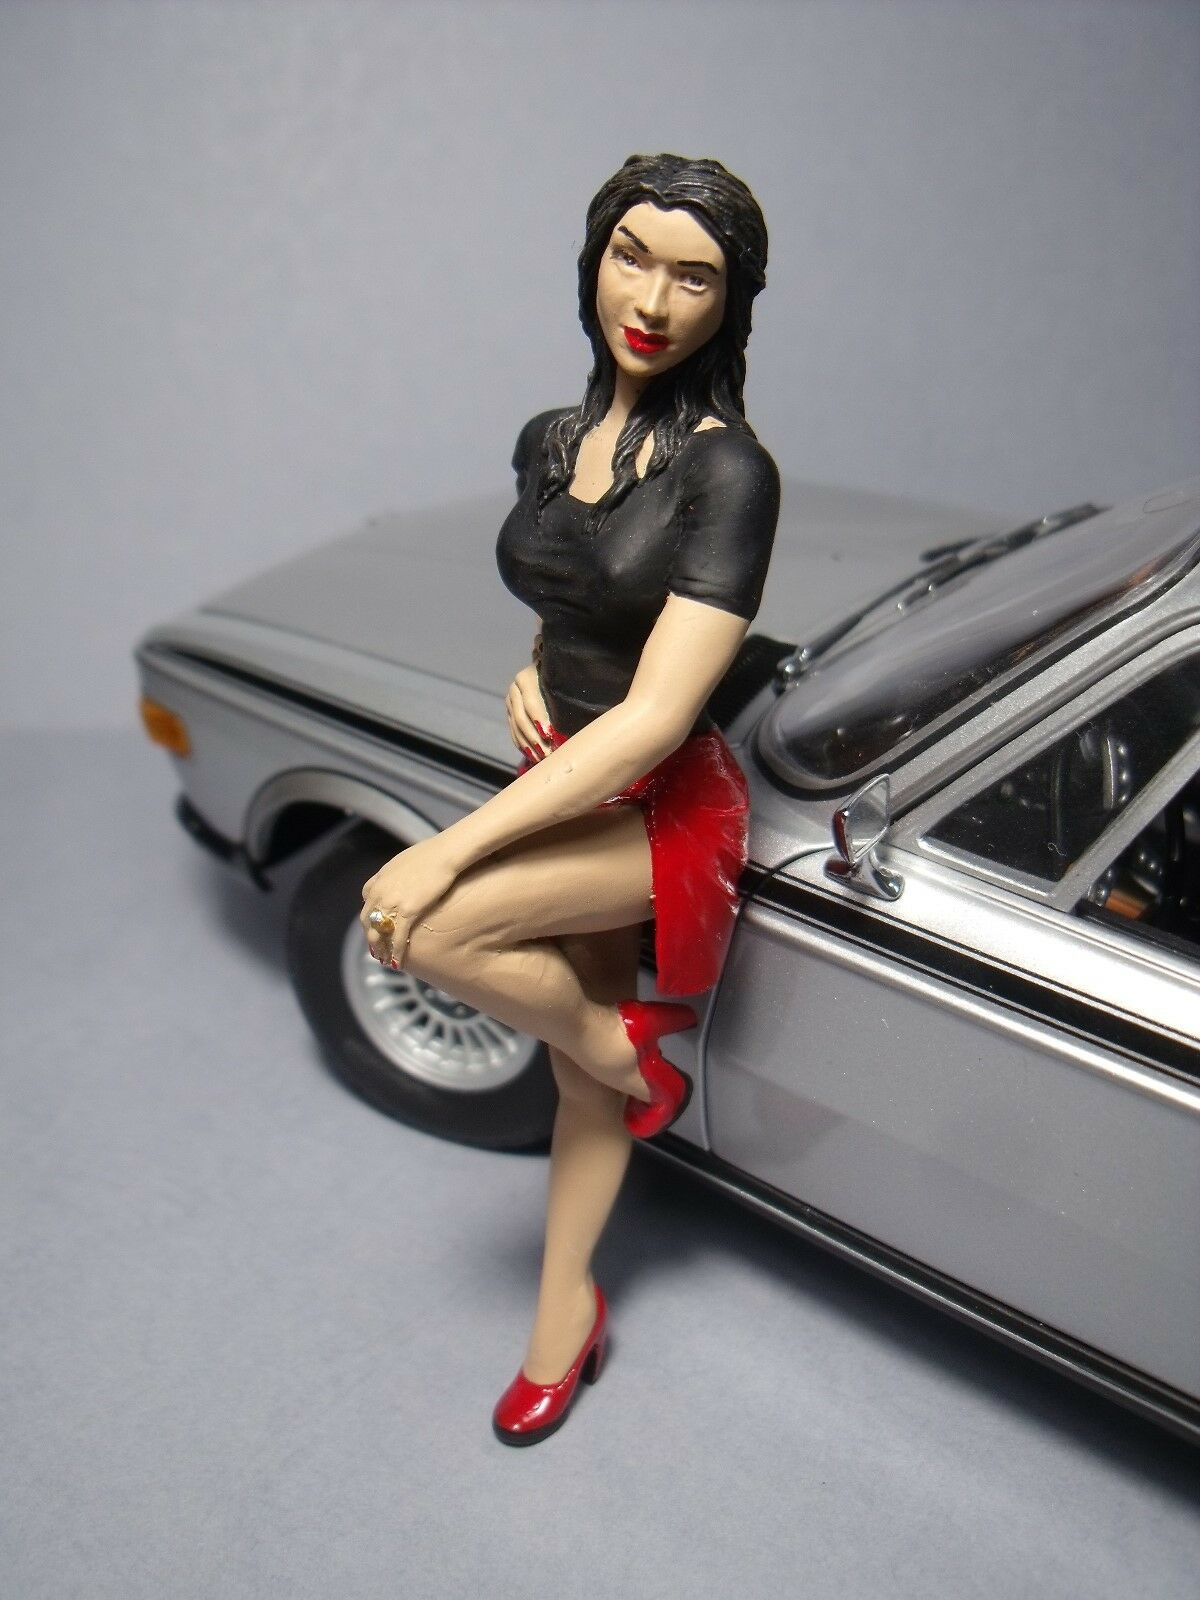 OLGA  1 18  PAINTED  GIRL  FIGURE  BY  VROOM  FOR  MINICHAMPS  AUTOART  1 18